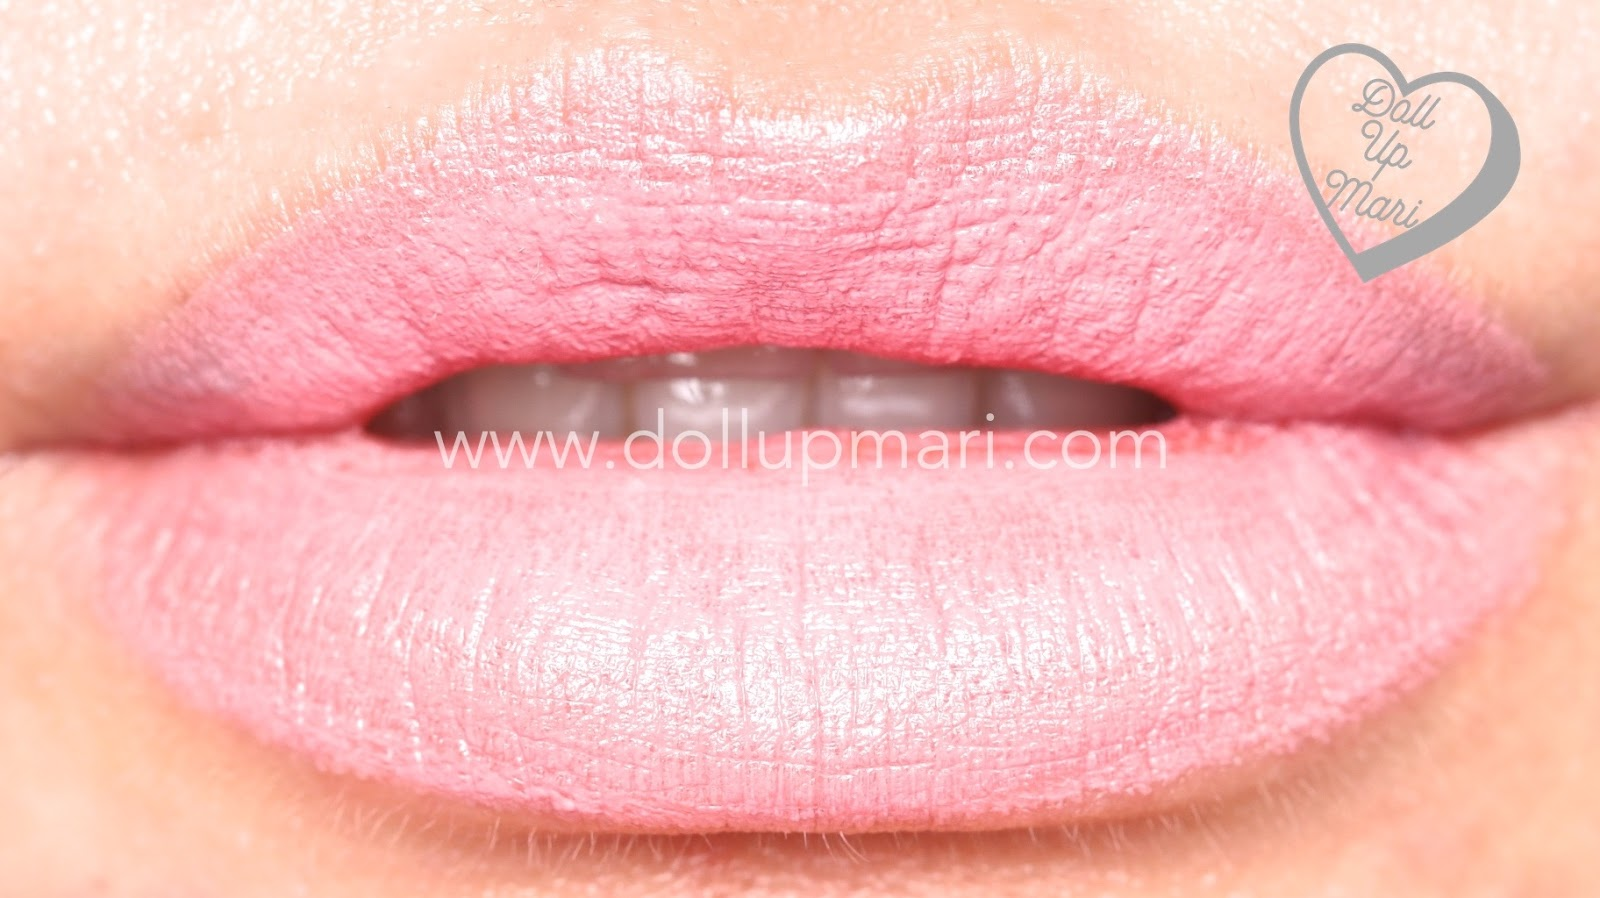 lip swatch of Pink Passion shade of AVON Perfectly Matte Lipstick